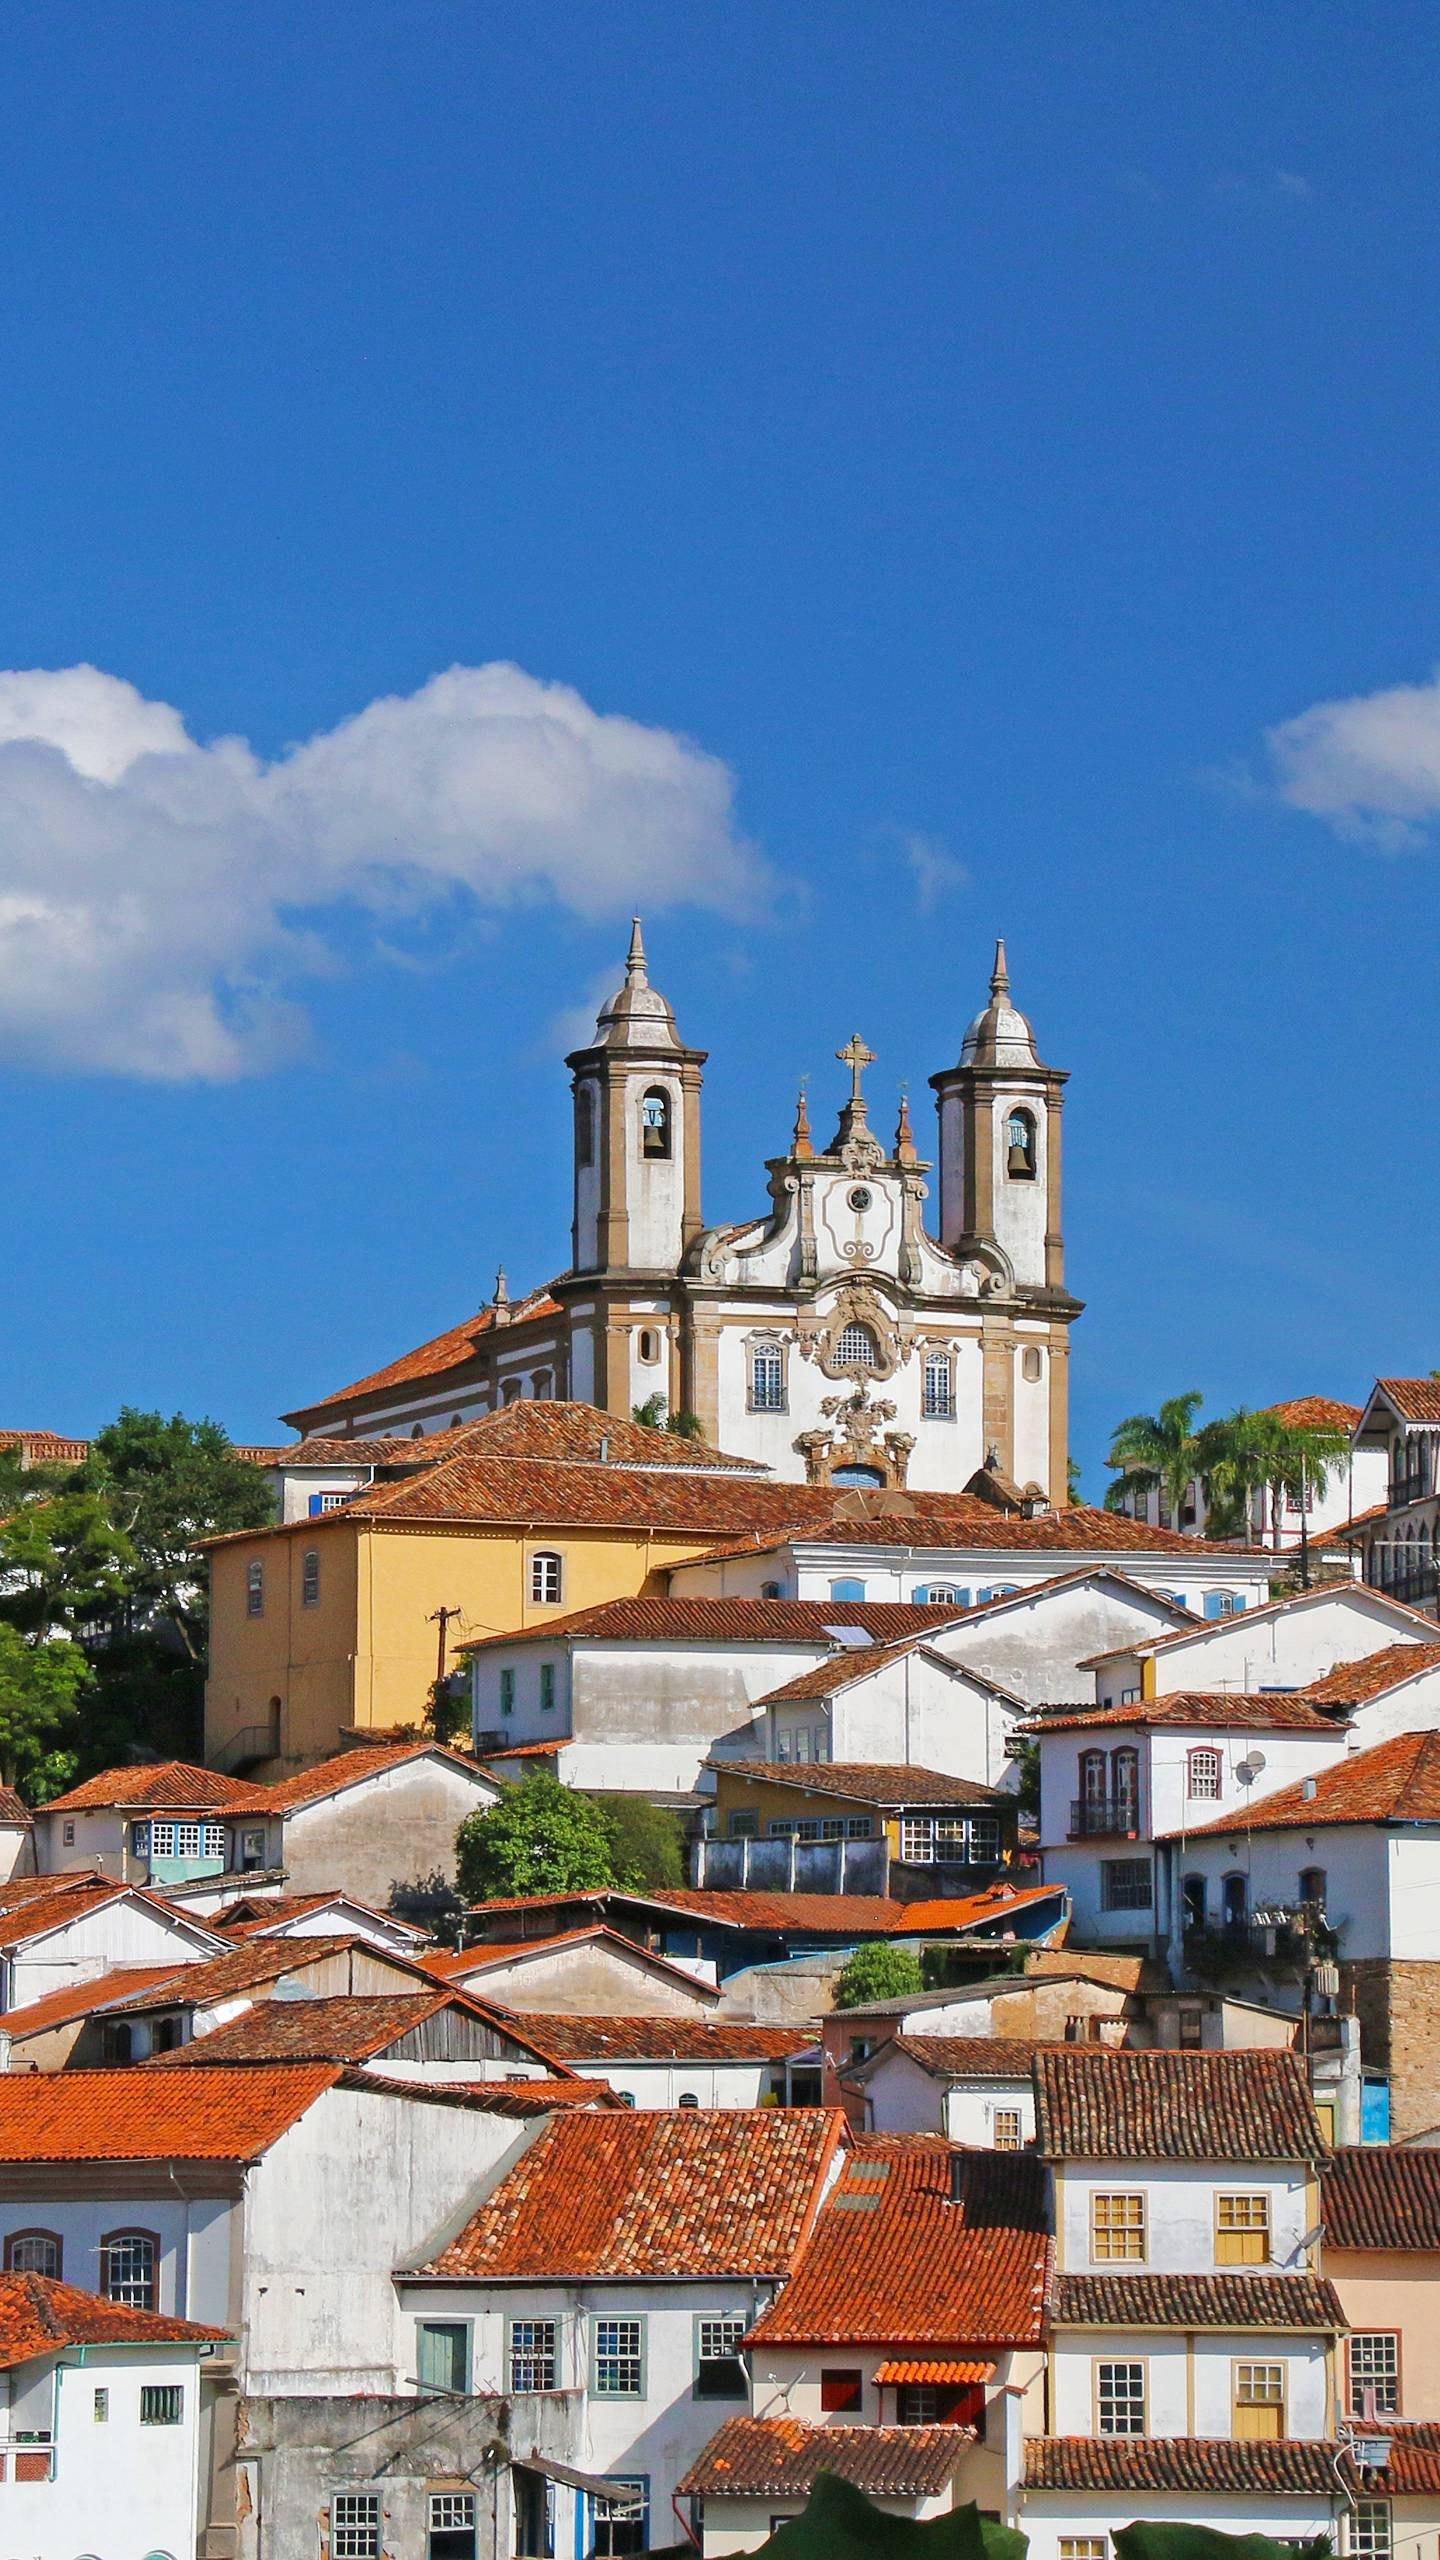 Brazil - Ouro Preto. The streets of the city are ups and downs, the layout is patchwork, and the Baroque architecture is timeless.